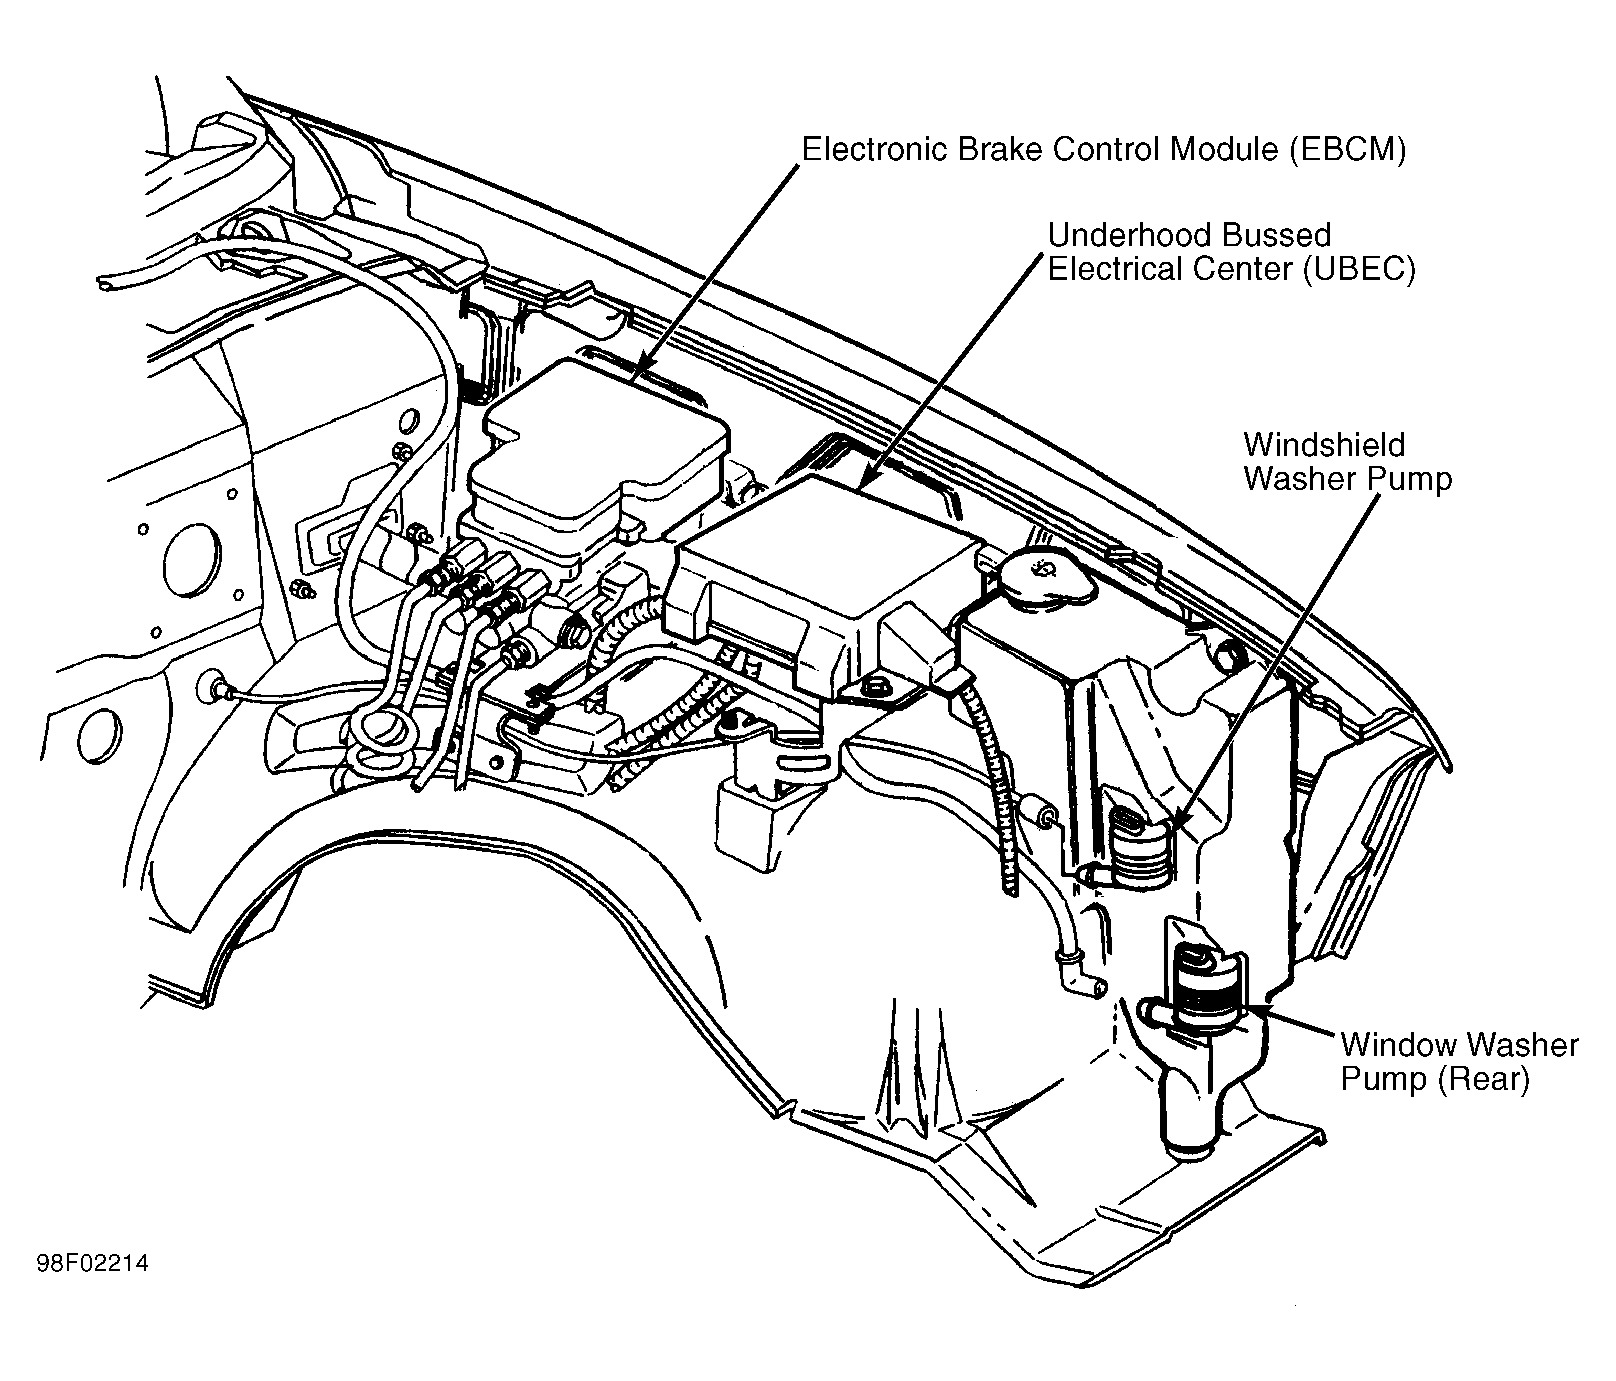 01 Cherokee Fuse Junction Box Location Wiring Library 2016 Ford E450 Diagram Free Download Schematic 1998 Gmc Sonoma Detailed Schematics Rh Antonartgallery Com 2001 Safari